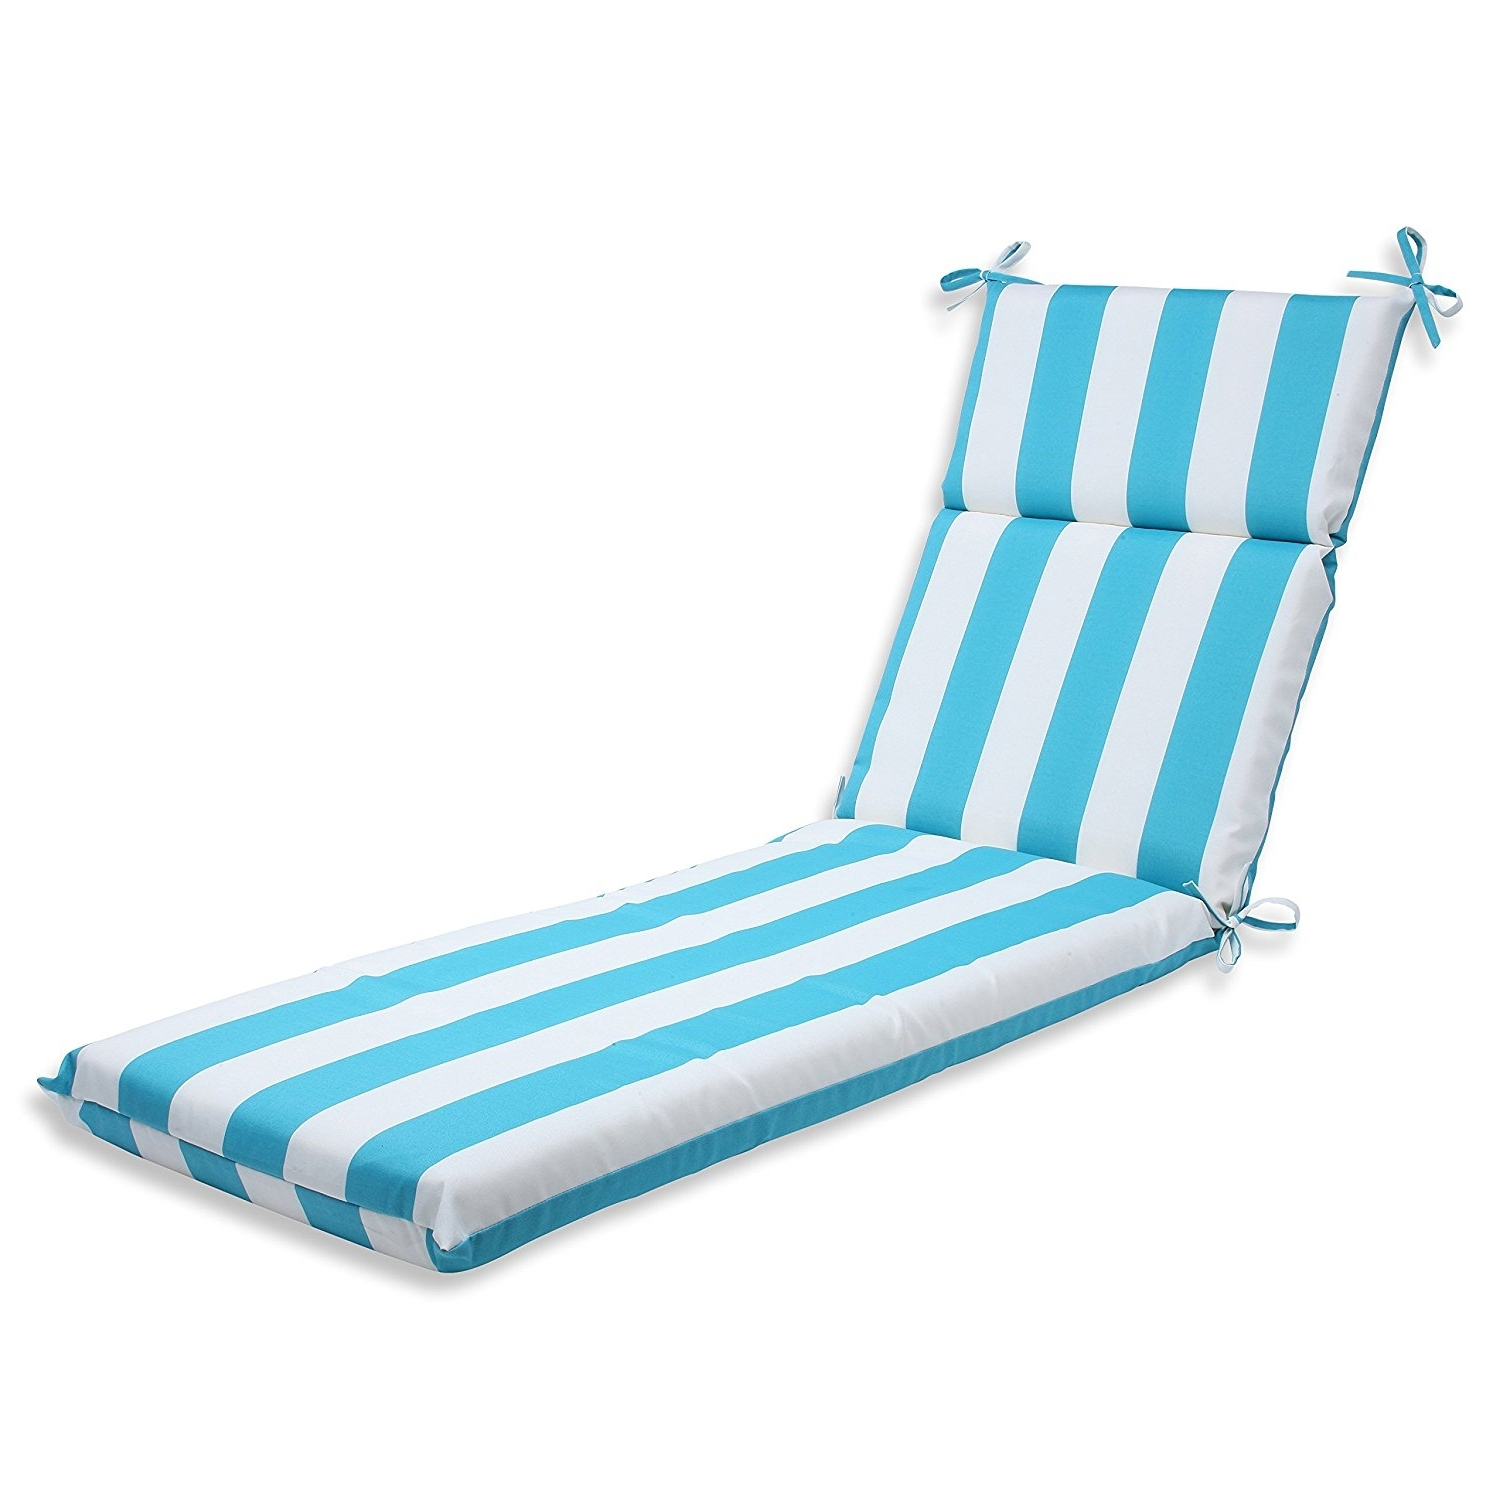 Outdoor Chaise Cushions Intended For Most Popular Amazon: Pillow Perfect Outdoor Cabana Stripe Chaise Lounge (View 11 of 15)